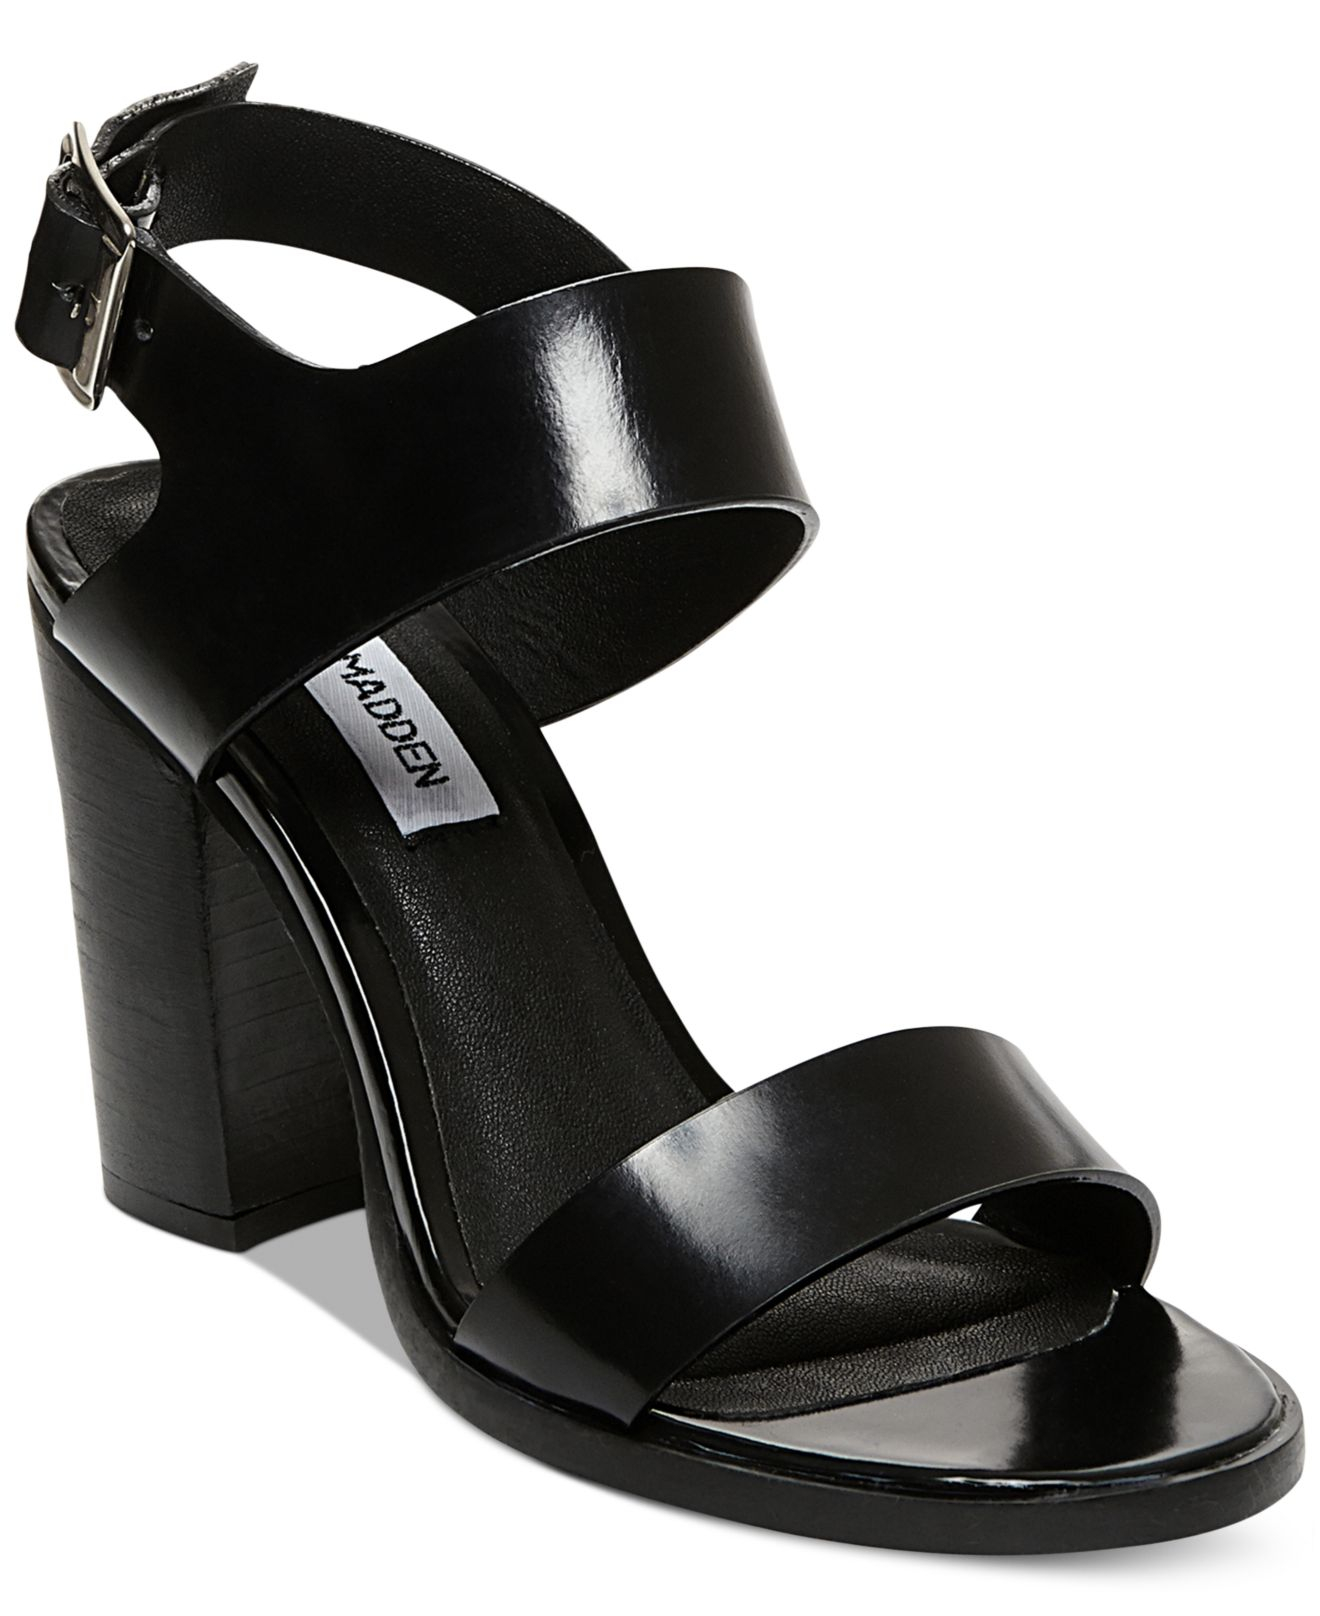 47943ac3490 Lyst - Steve Madden Women S Blaair Block Heel Sandals in Black